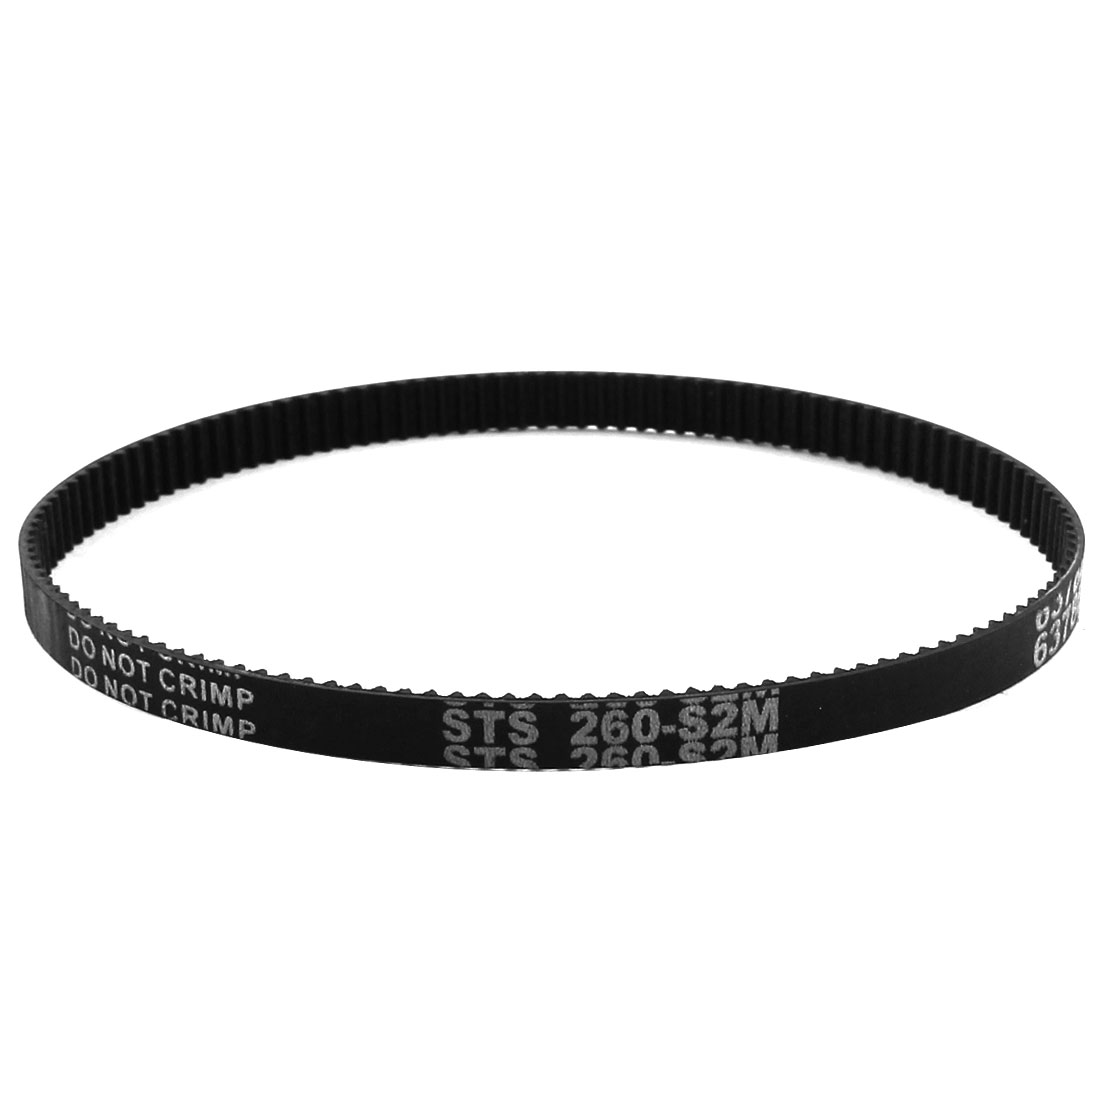 S2M-260 2mm Pitch 130-Teeth 6mm Width Black Rubber Single Side Synchronous Timing Belt